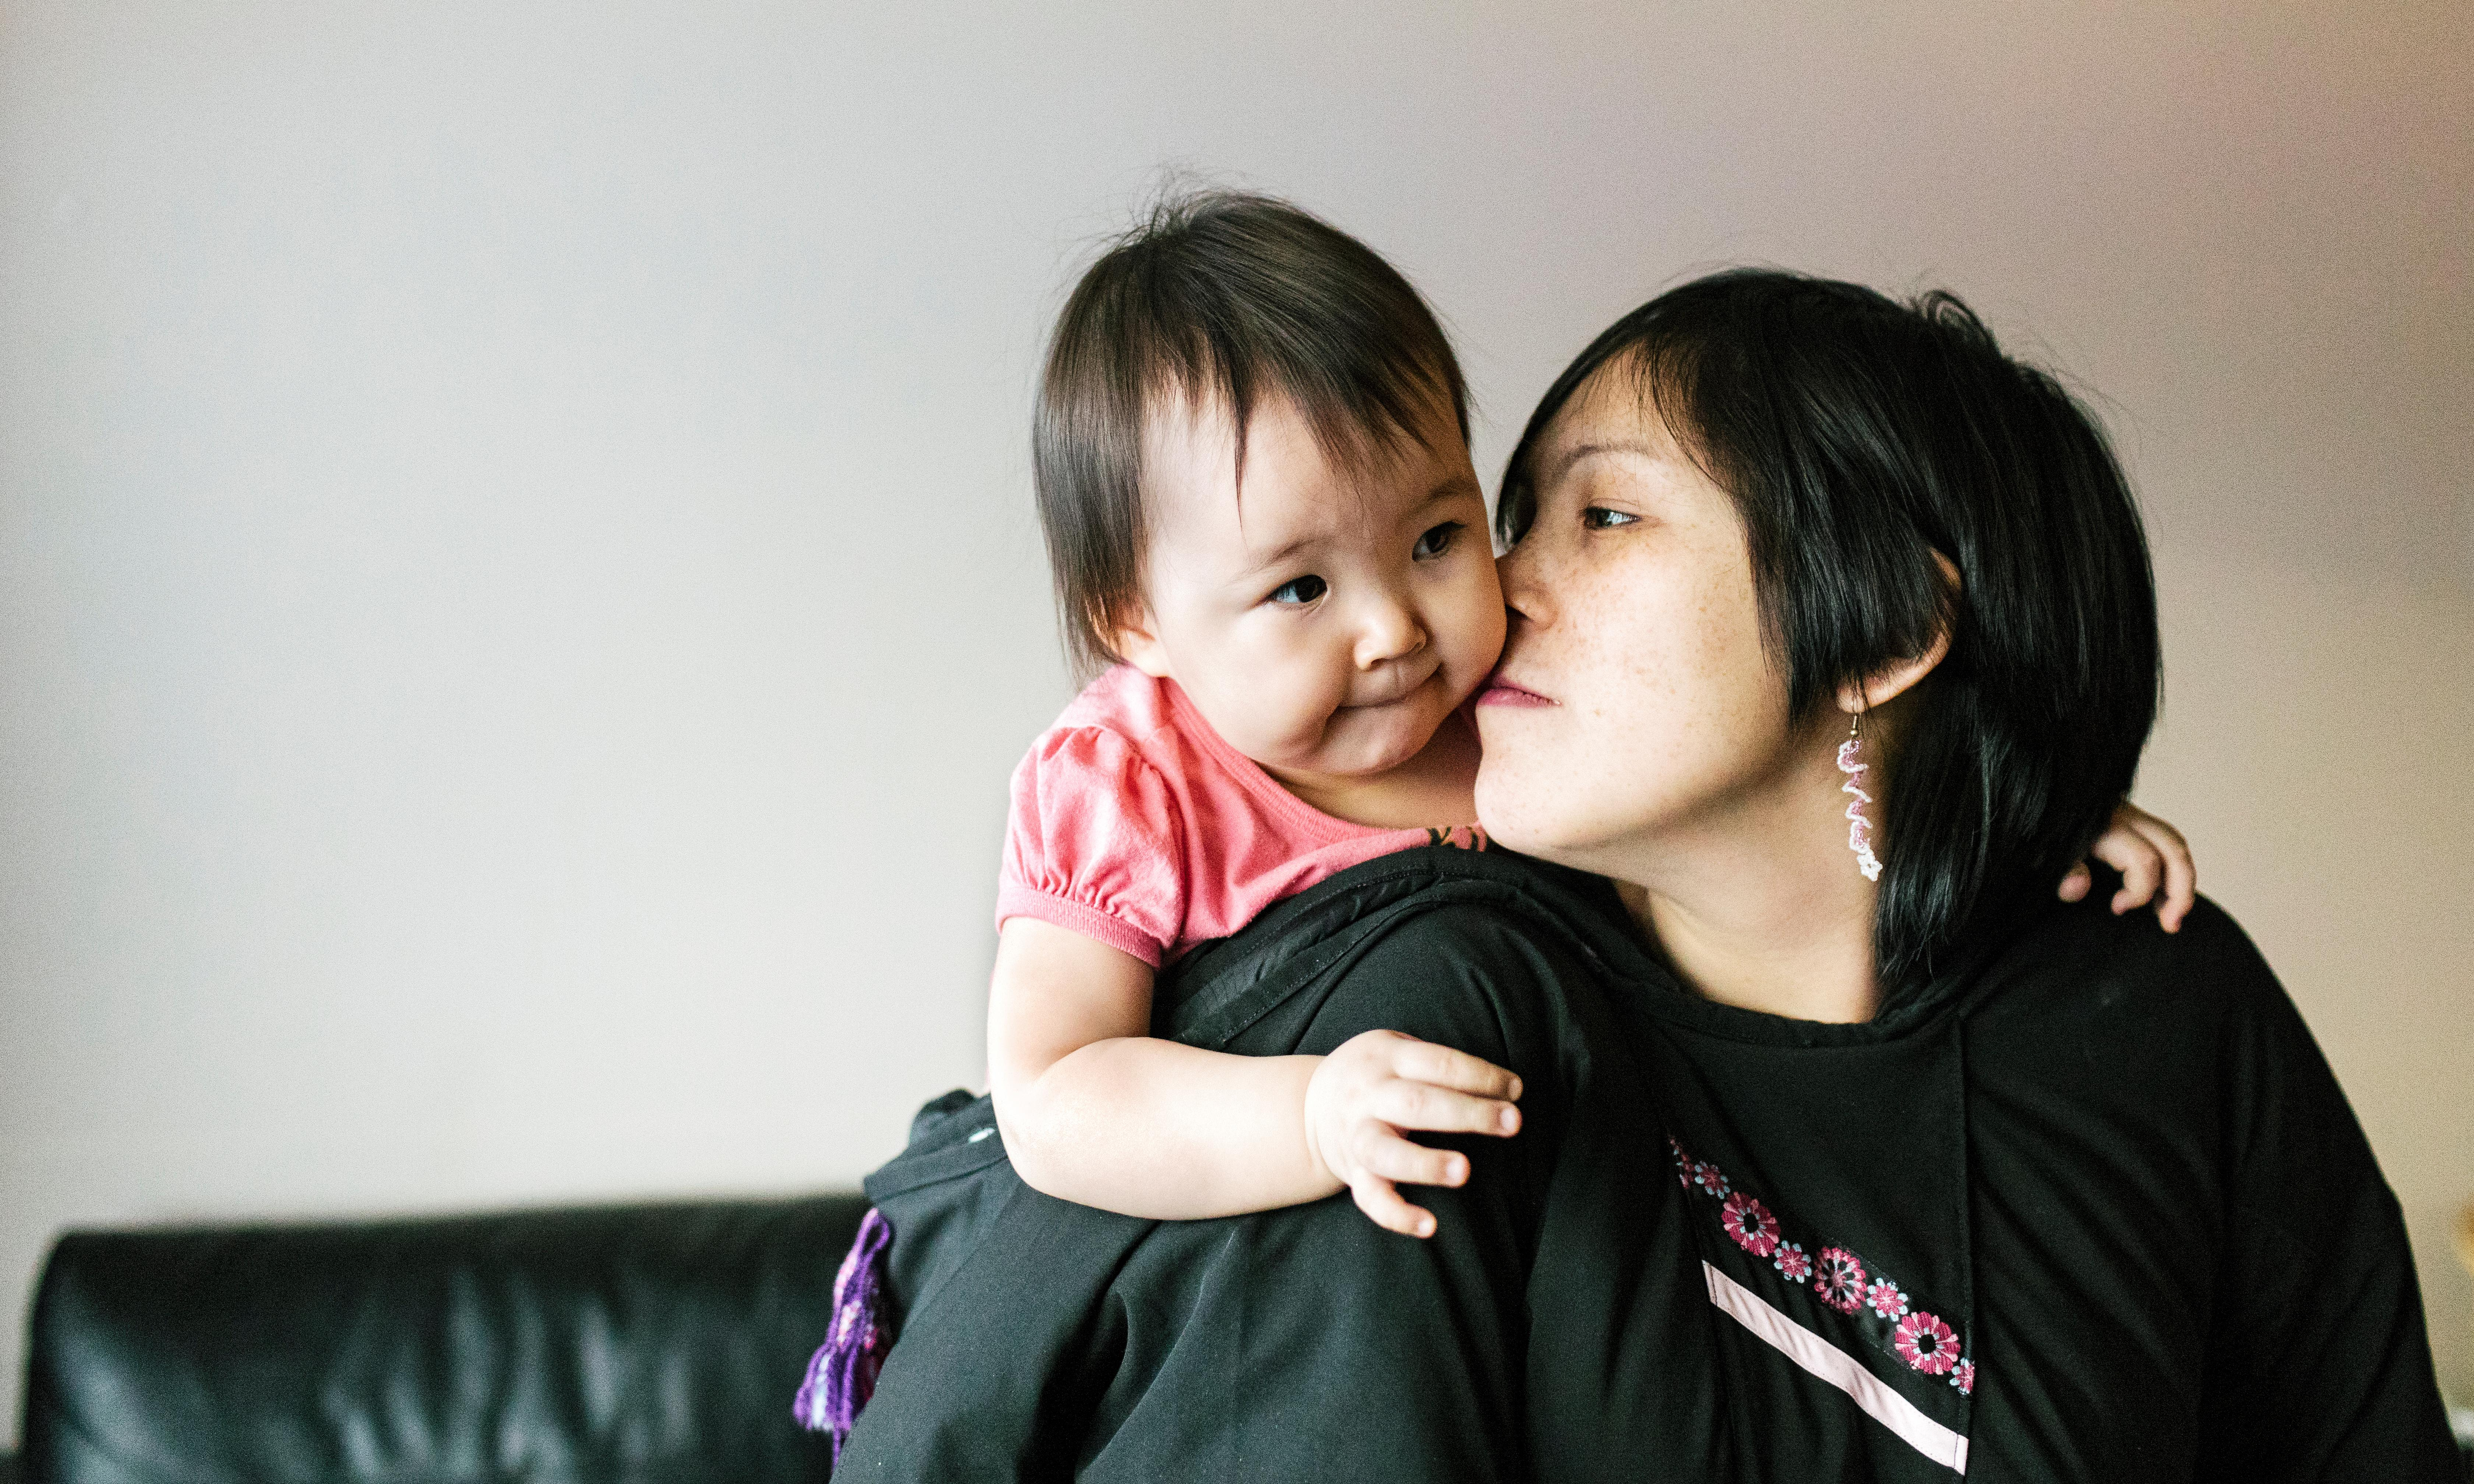 The Inuit don't shout at their children – so why do we?